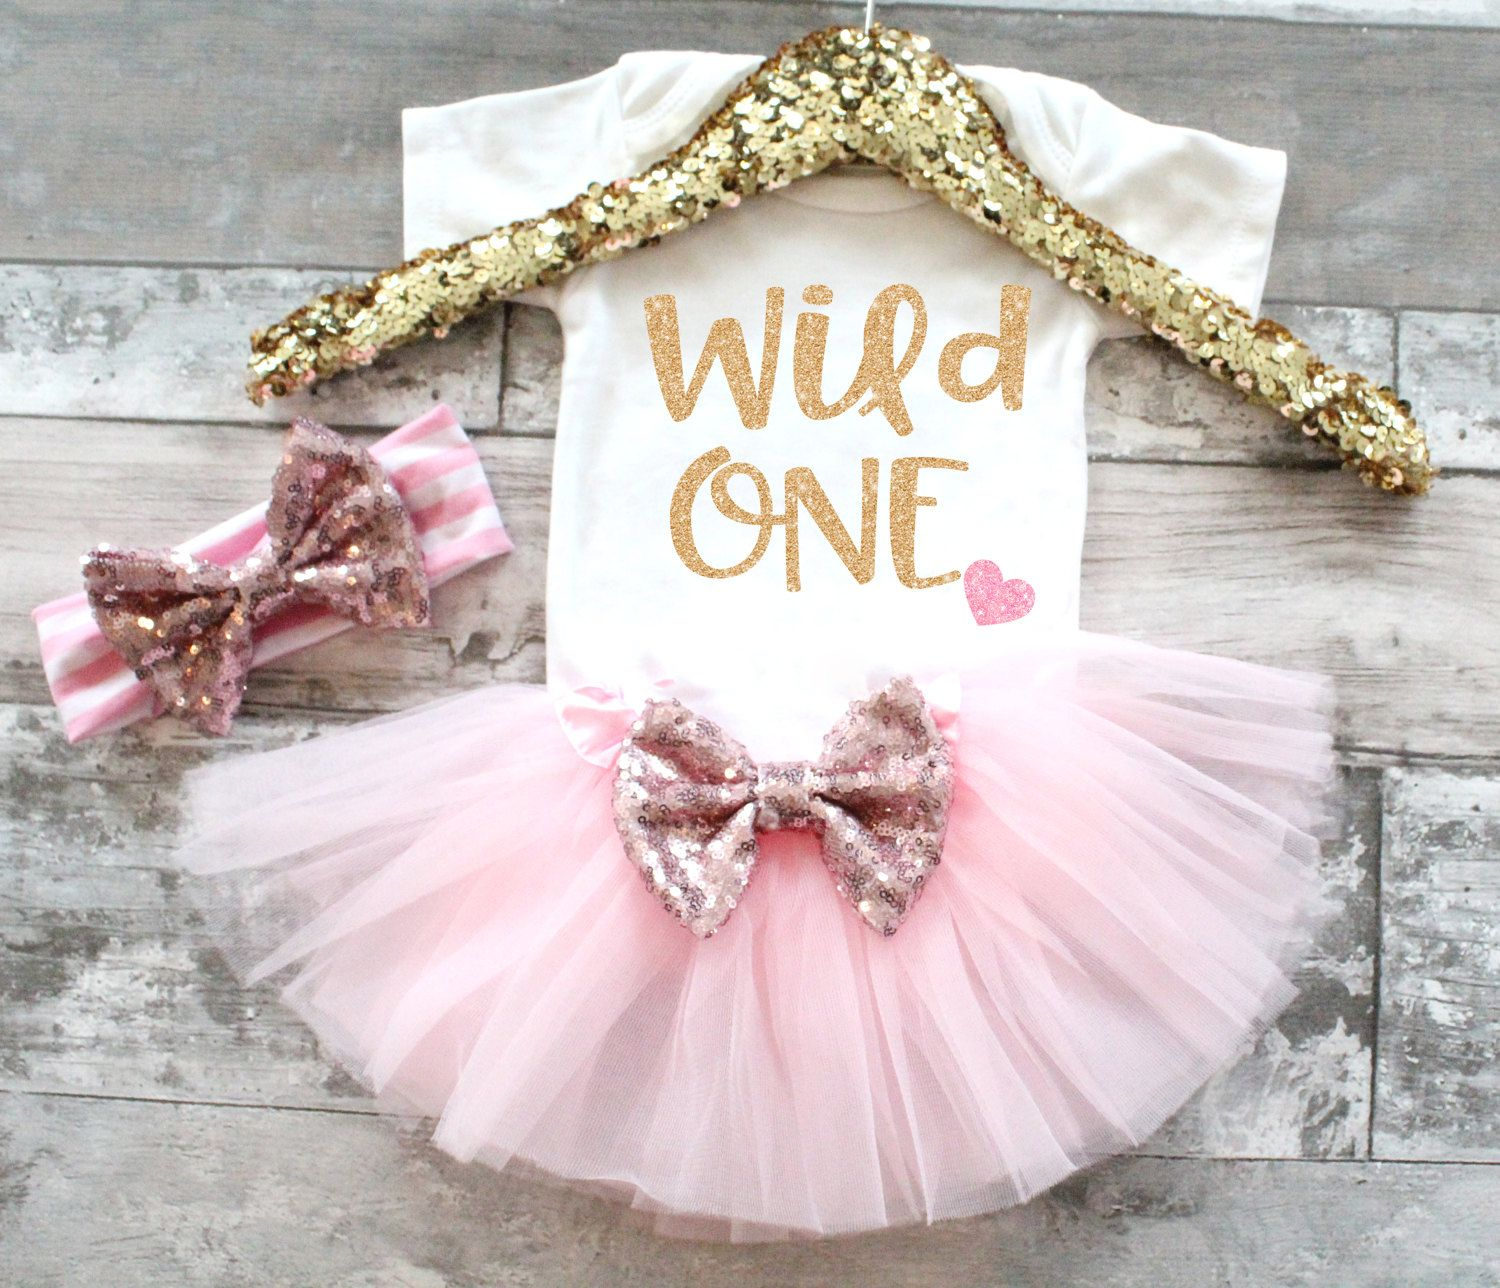 4b1bd8b04 Baby Girl 1st Birthday Outfit Pink and Gold 1st Birthday Outfit Wild One 1st  Birthday Outfit Birthday Tutu set First Birthday